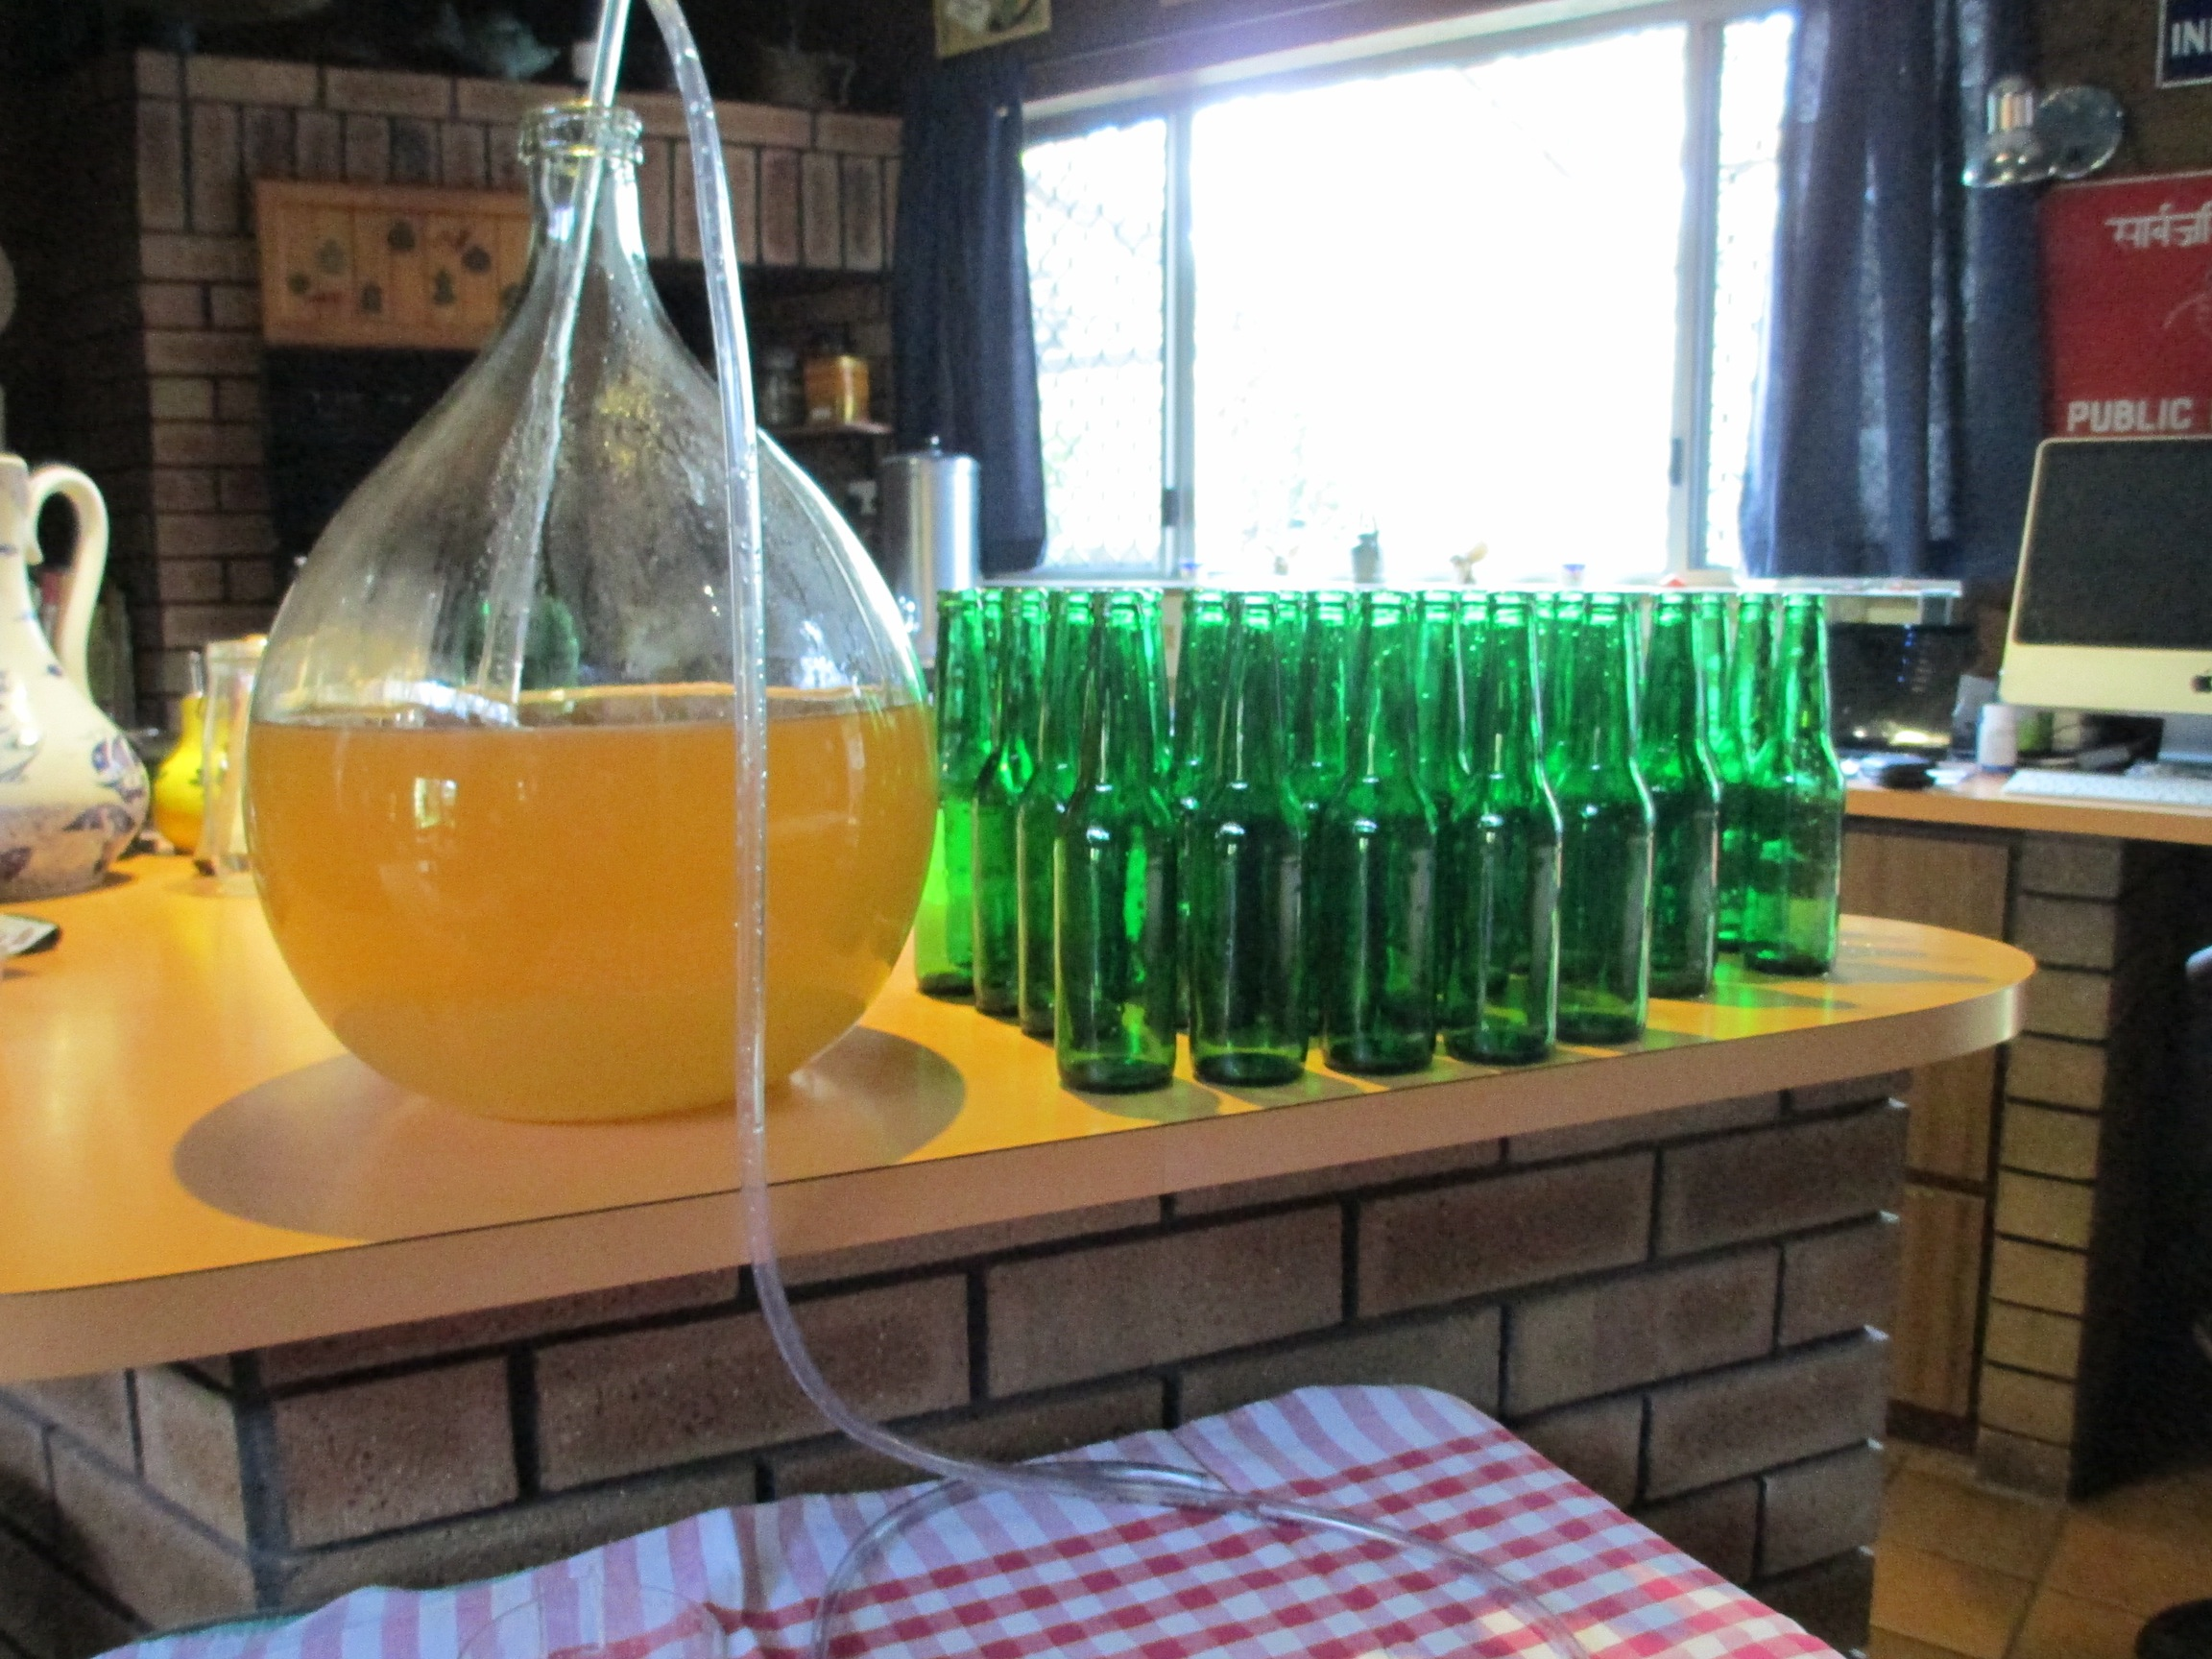 Ready to bottle